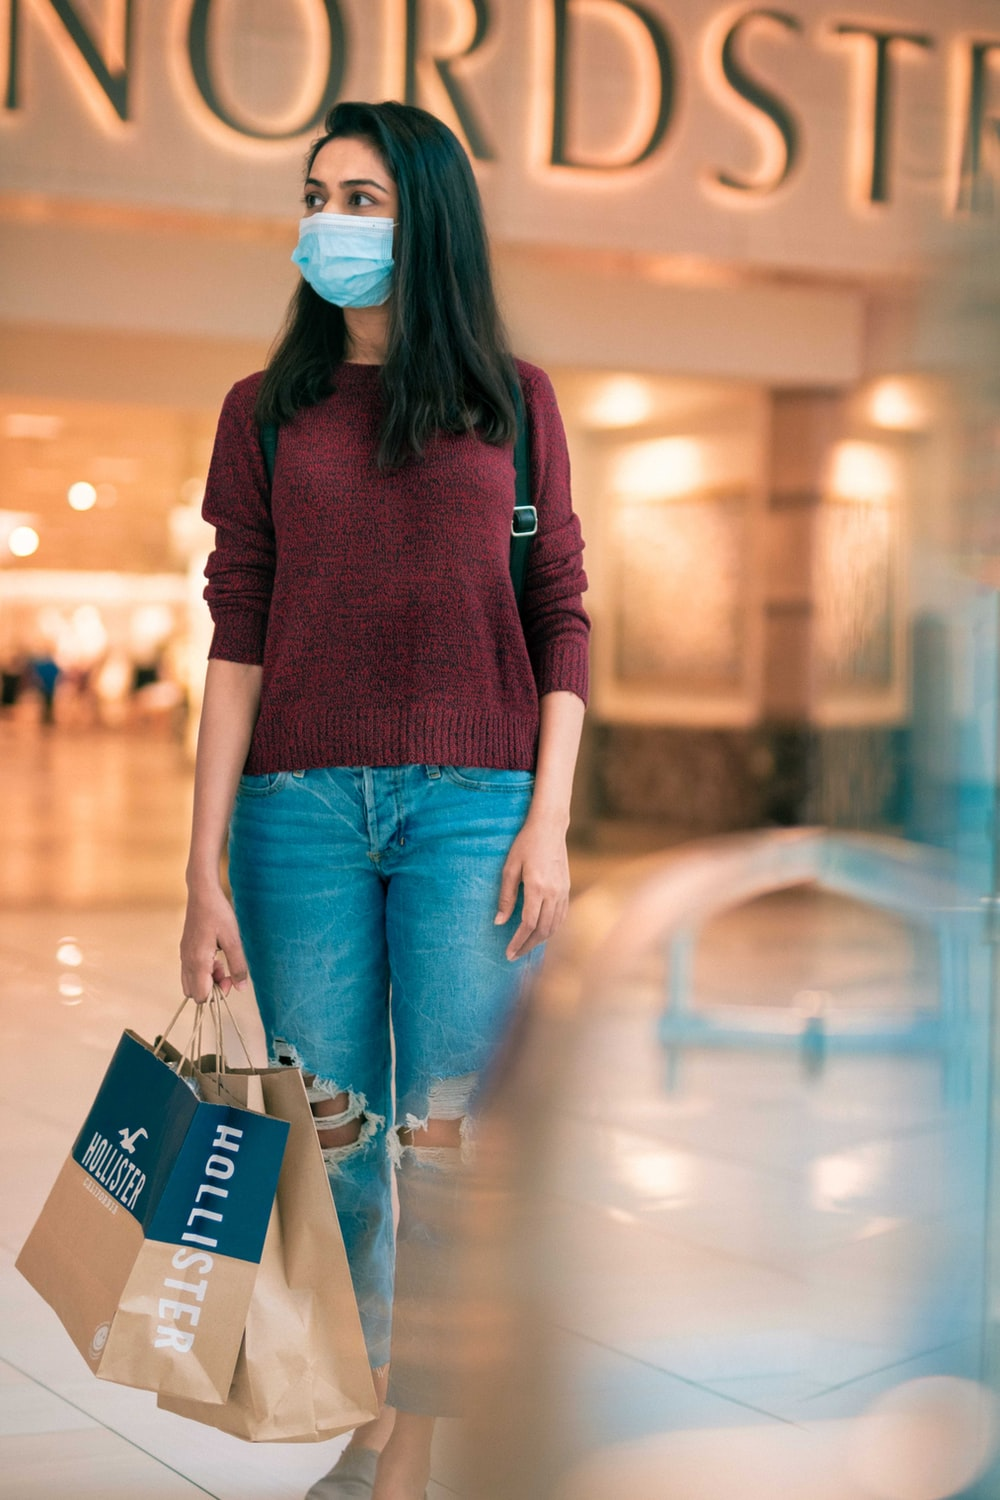 woman in red long sleeve shirt and blue denim jeans holding blue shopping bag